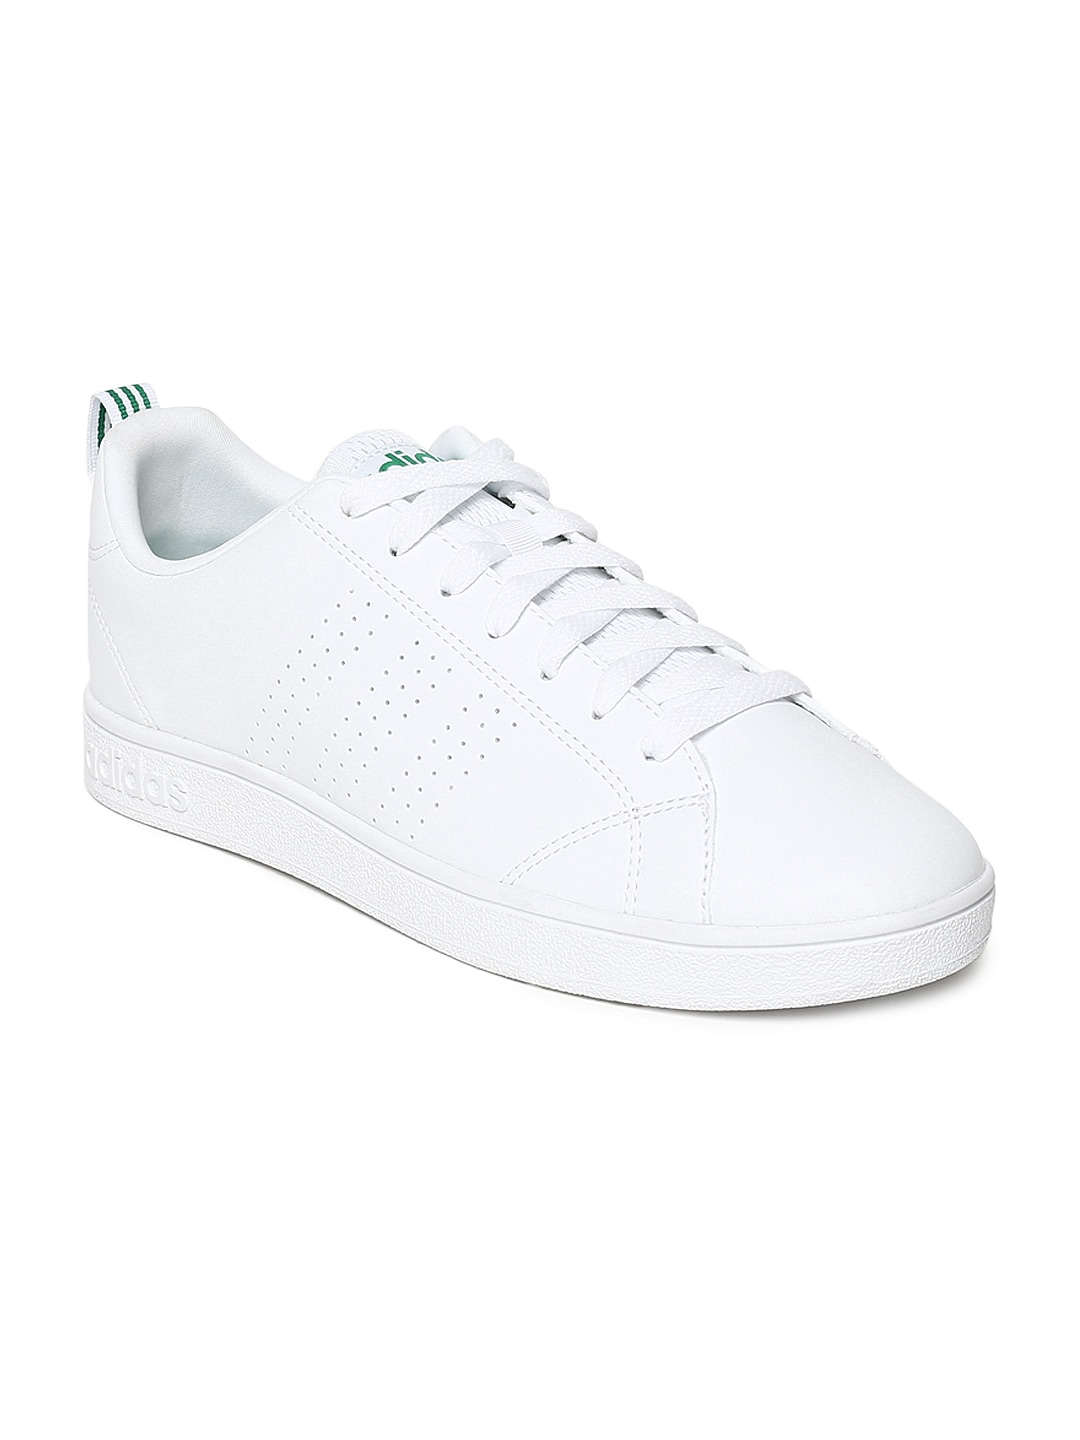 Shoes Adidas Tennis Sports Buy Online 3ARjL54